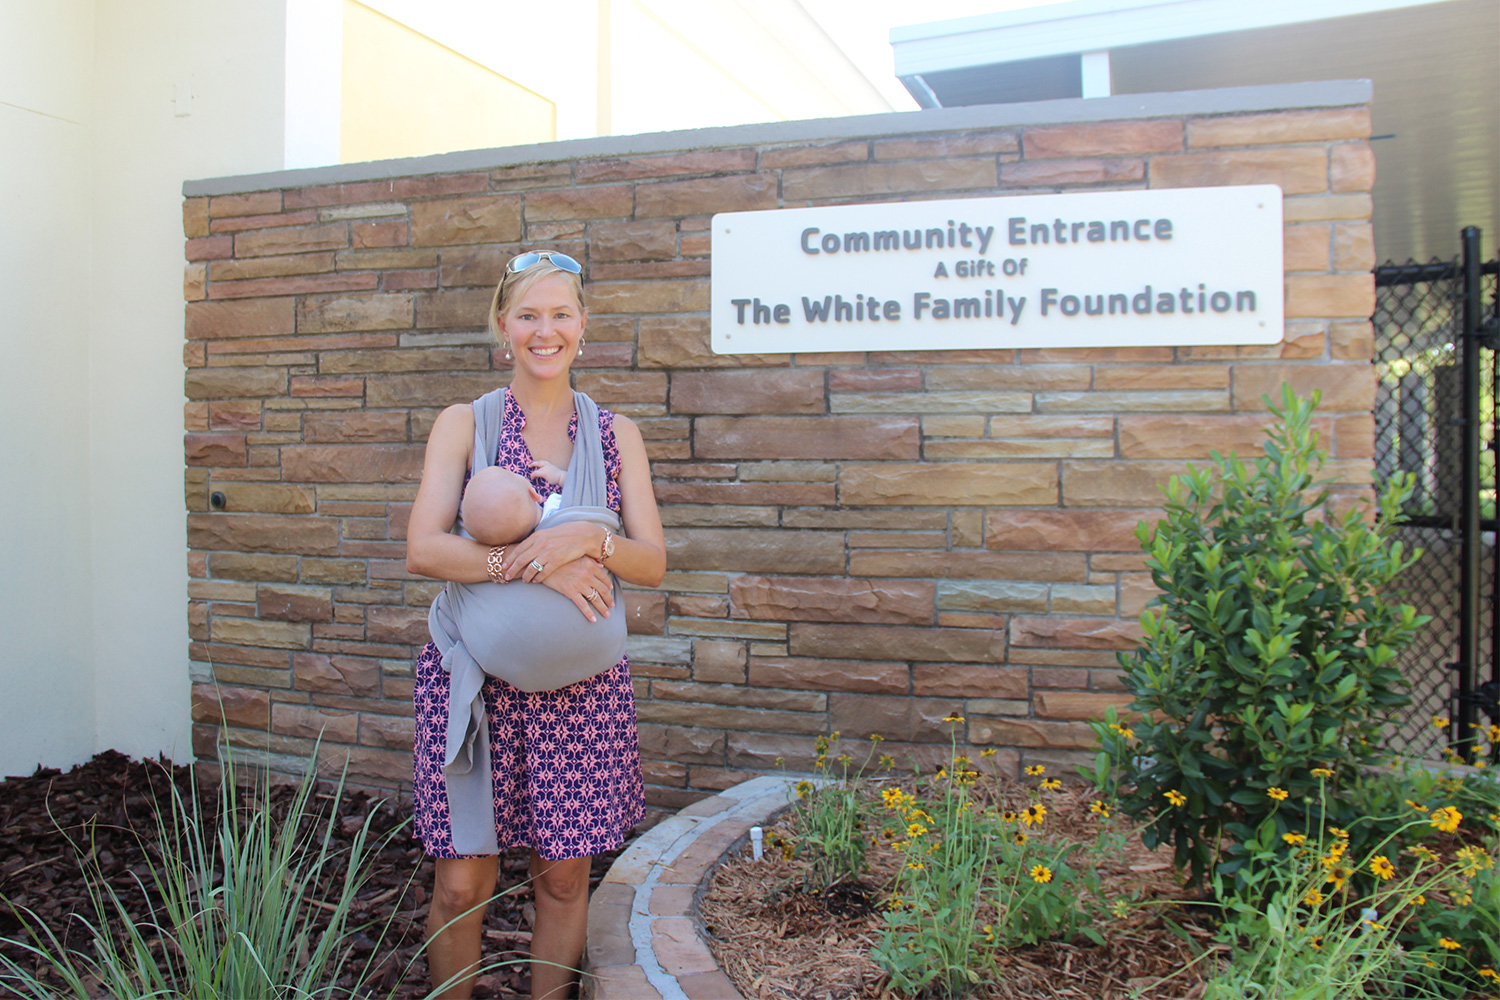 White-Family-Foundation.jpg